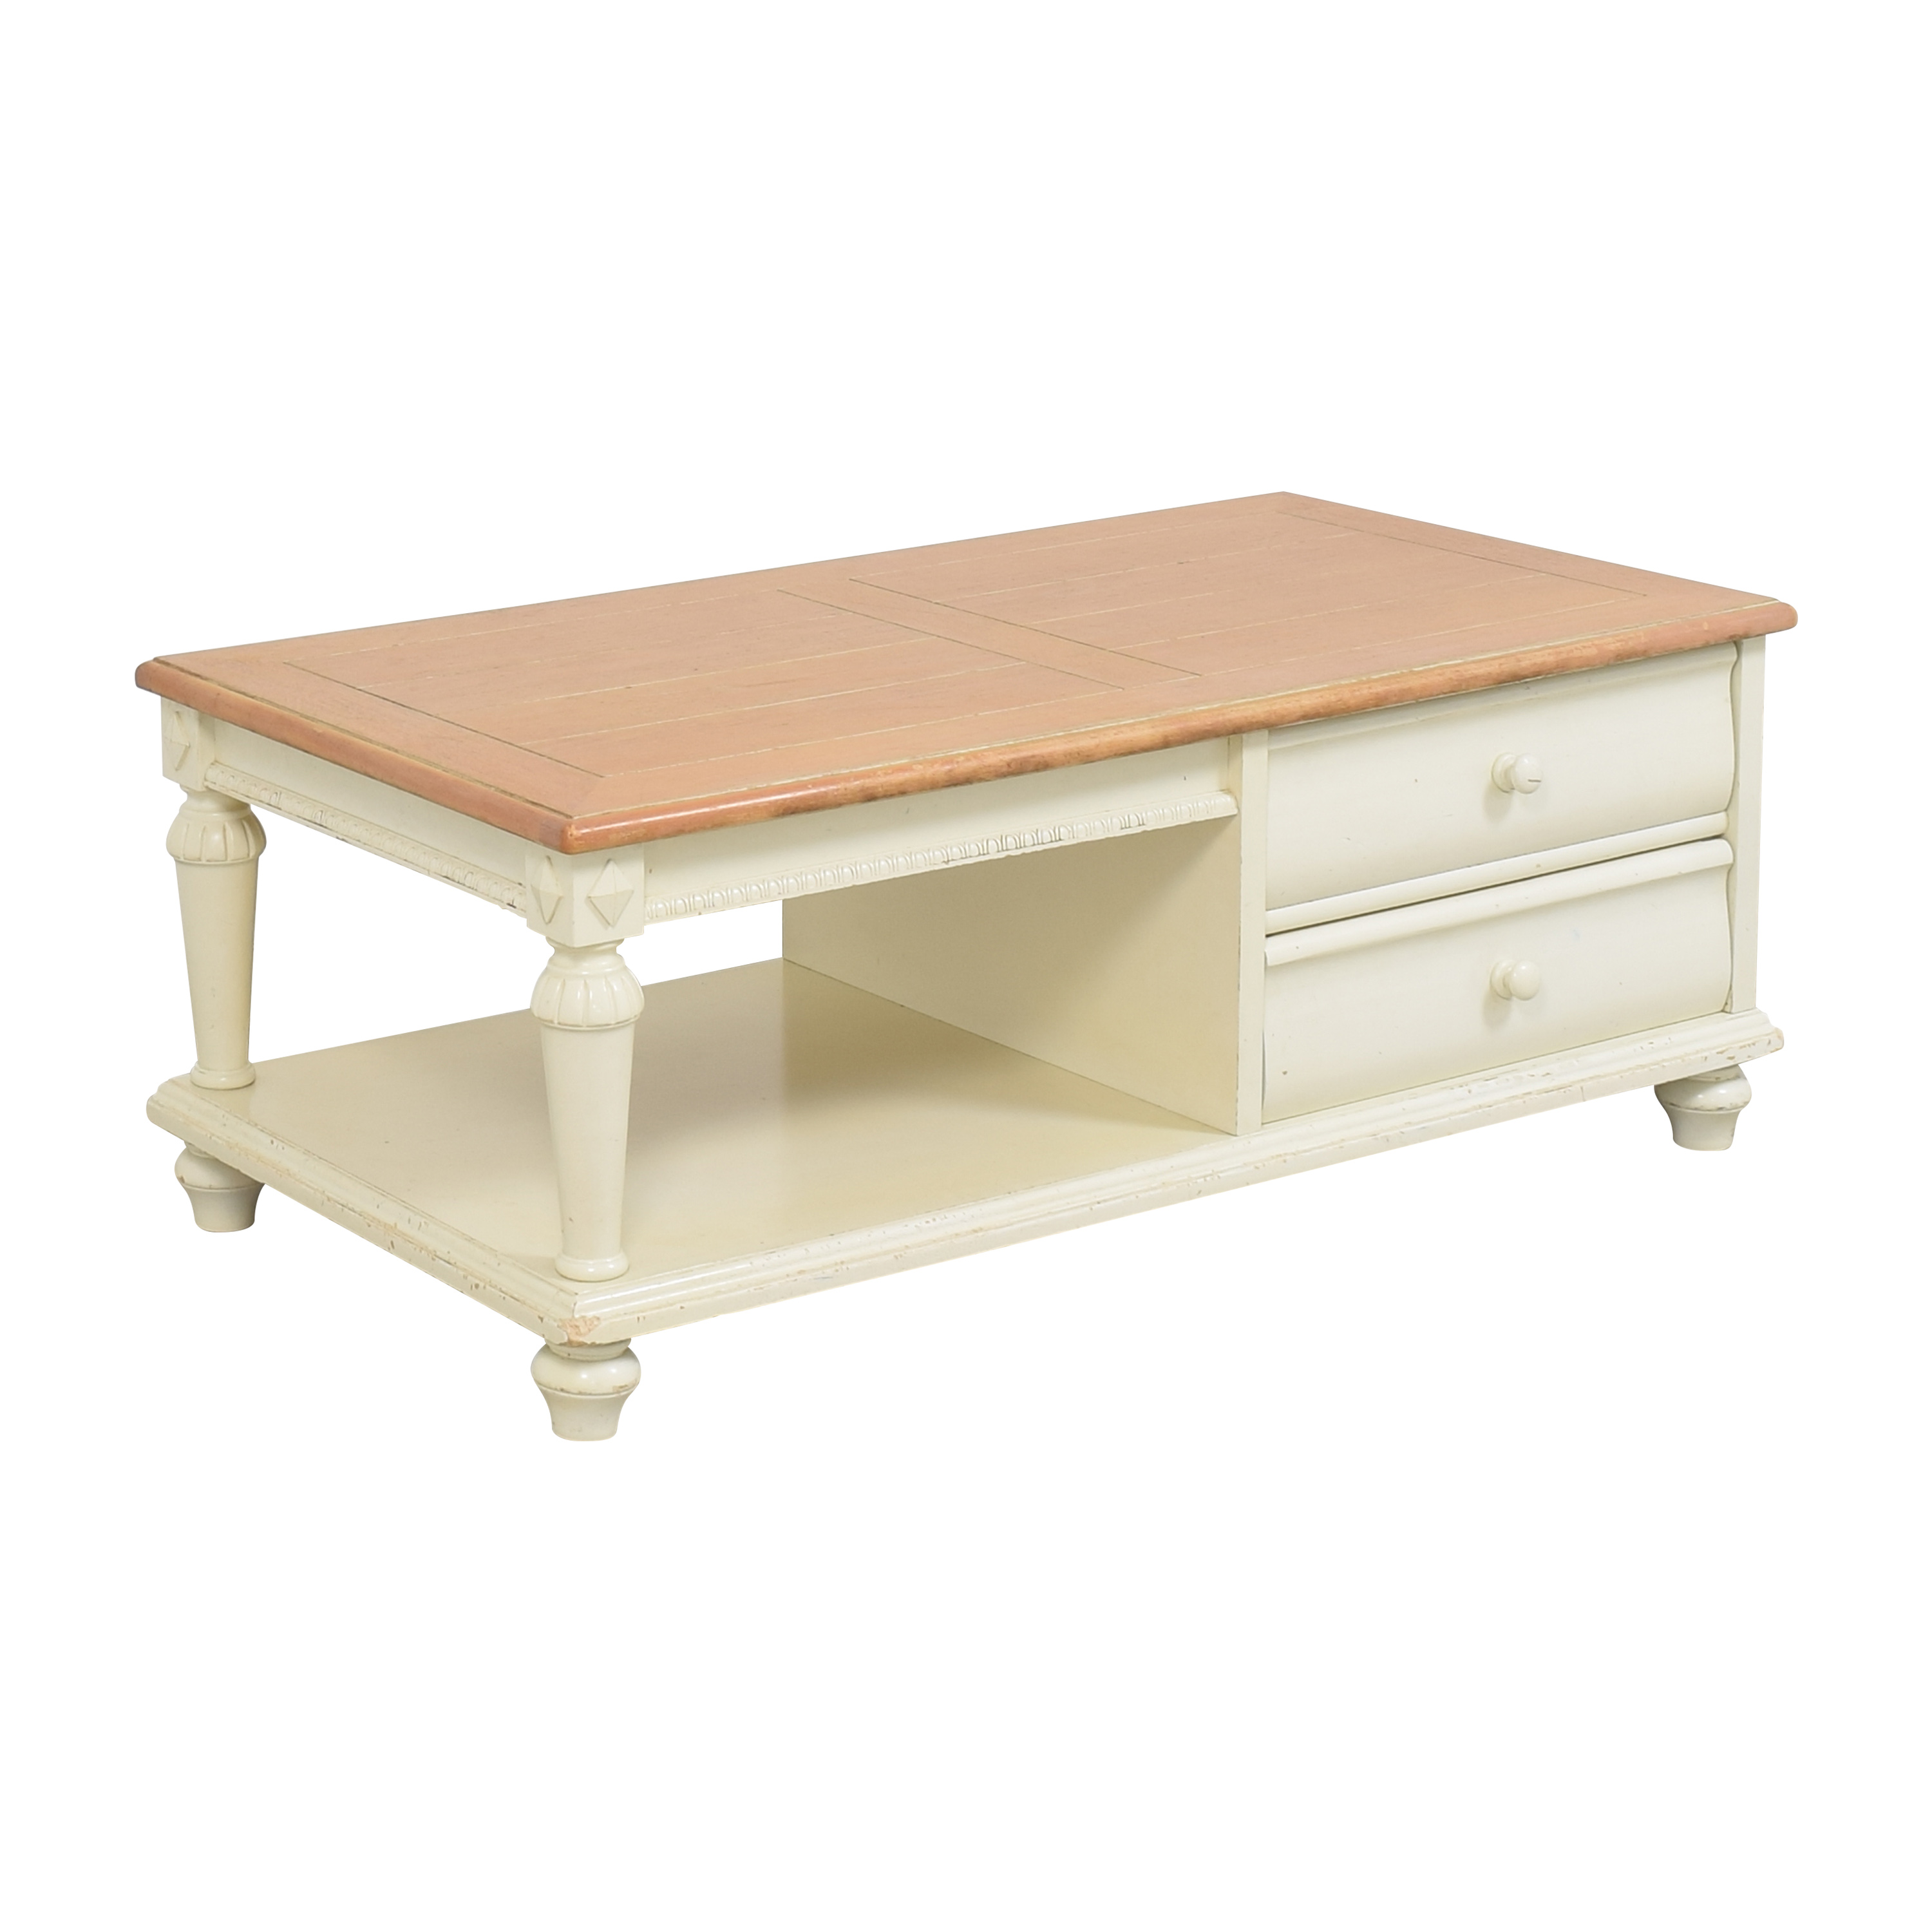 Thomasville Thomasville Summer Cottage Collection Coffee Table second hand